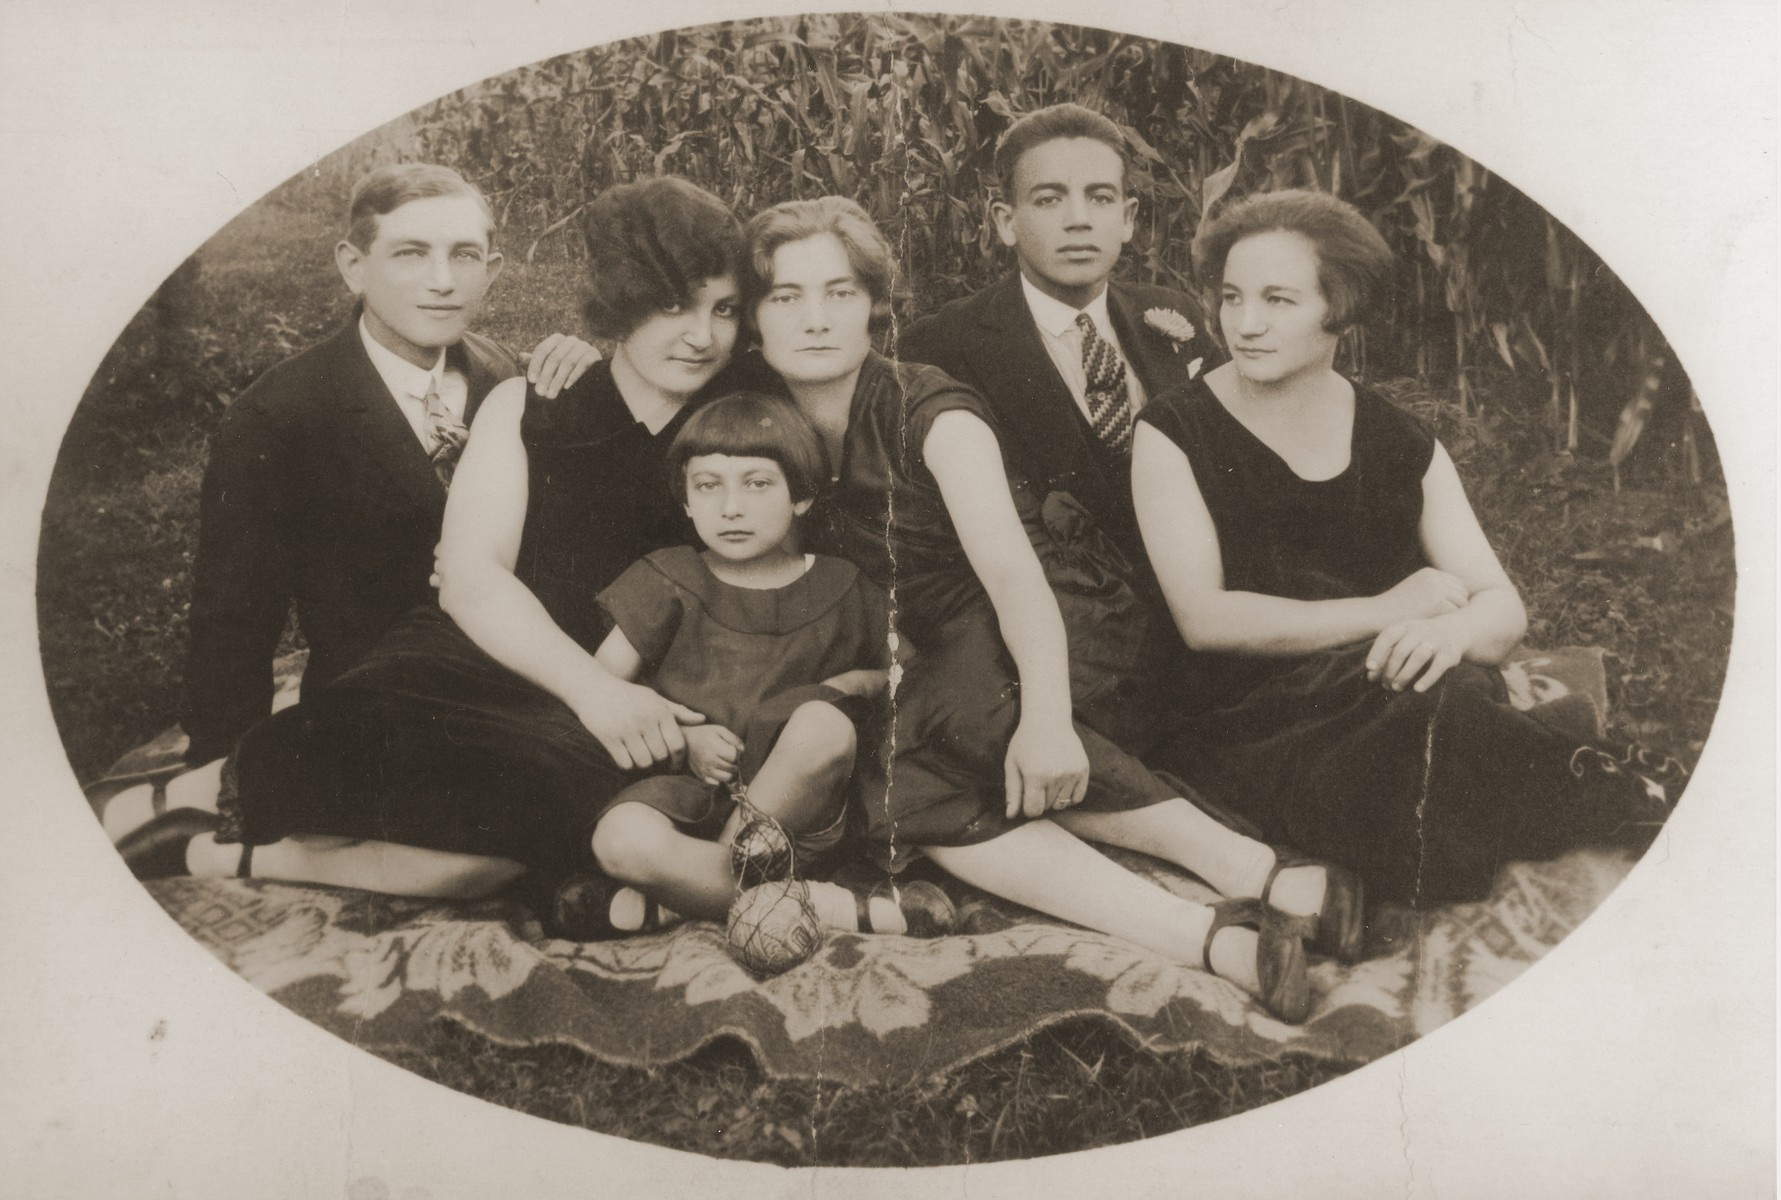 Members of the Gurfein and Saurhaft families pose outside in the grass in Dubiecko, Poland.  Pictured from left to right are: Binyamin Saurhaft, Cila (Gurfein) Saurhaft, Bronia Saurhaft, Ita Gurfein, [first name unknown] Saurhaft, and Devora Saurhaft.